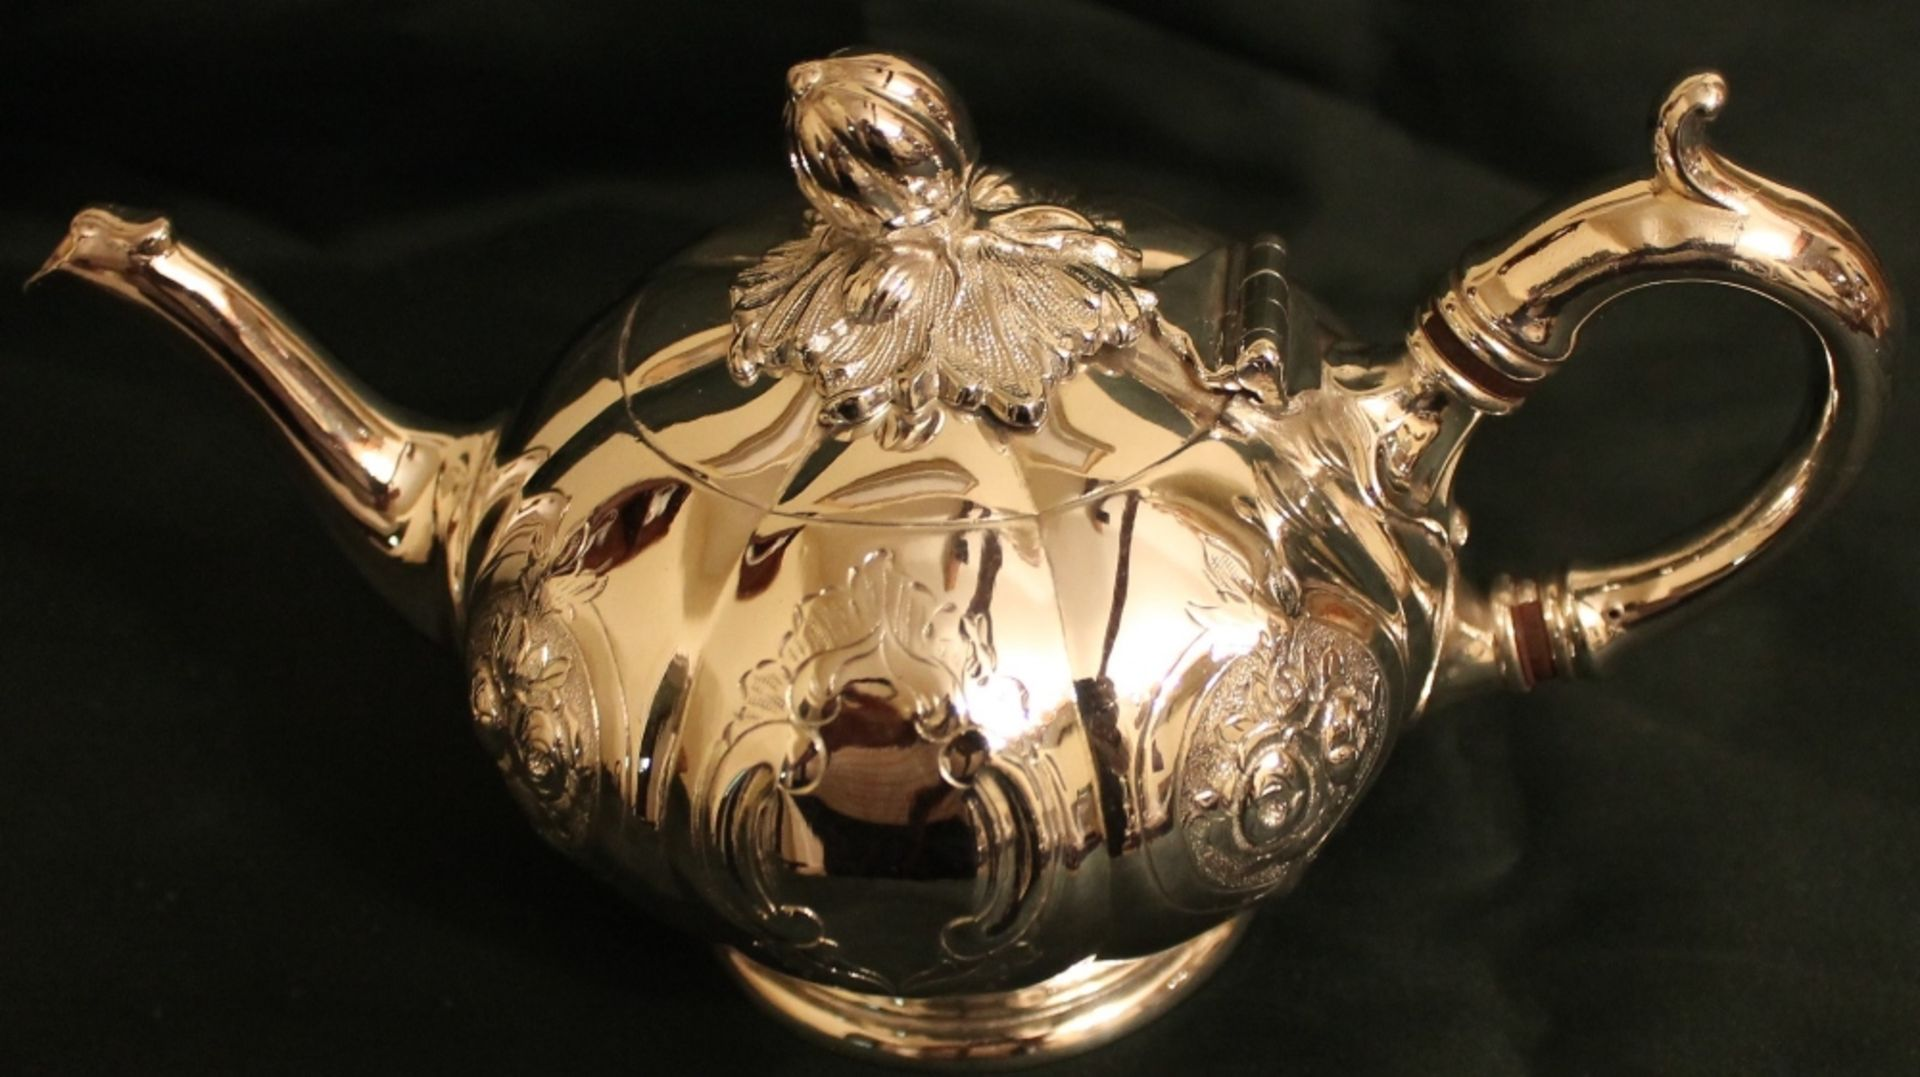 Lot 347 - SMALL SILVER PLATED TEAPOT WITH FLORAL DECORATION